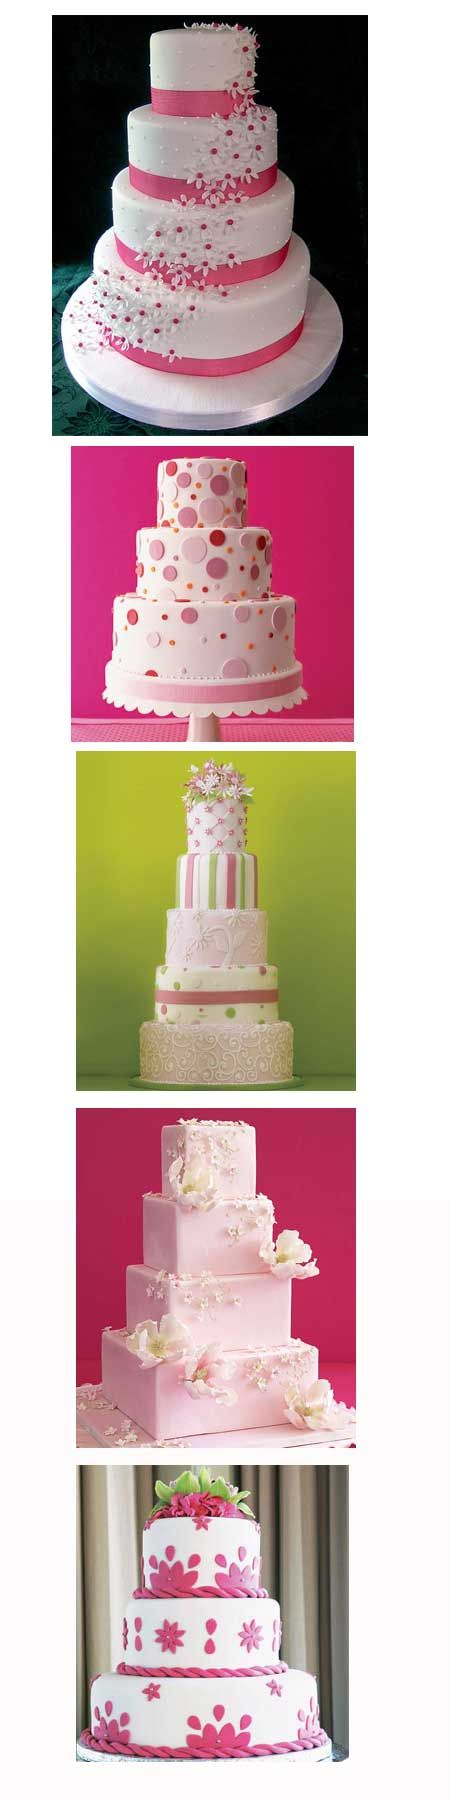 36 best Wedding cake images on Pinterest | Conch fritters ...